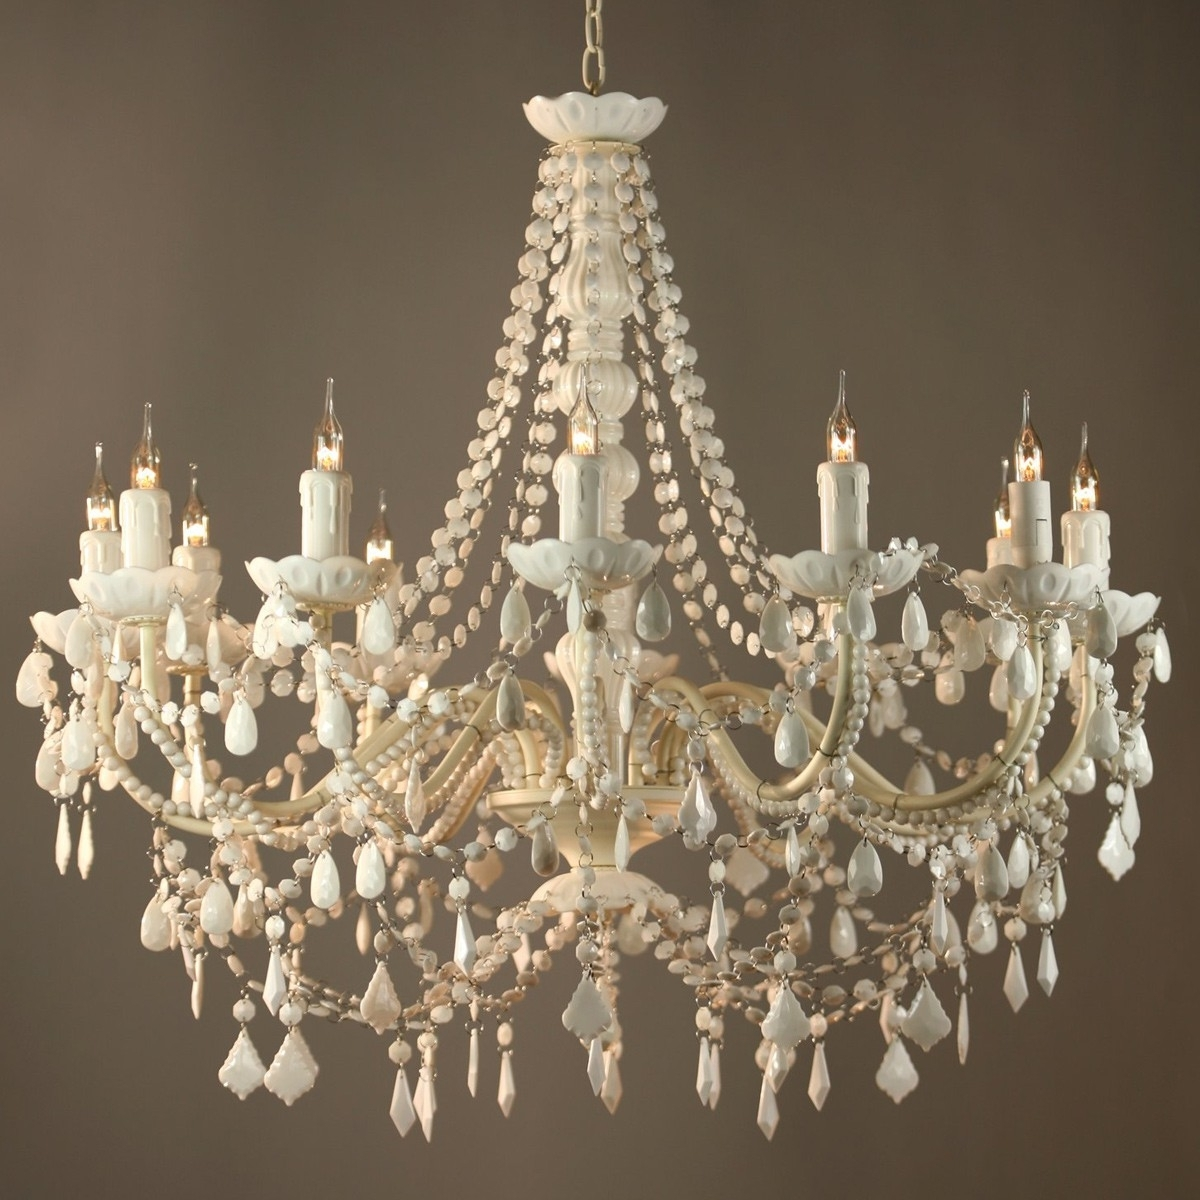 Antique Chandeliers For Your House Inside Most Recently Released Antique Looking Chandeliers (View 1 of 15)